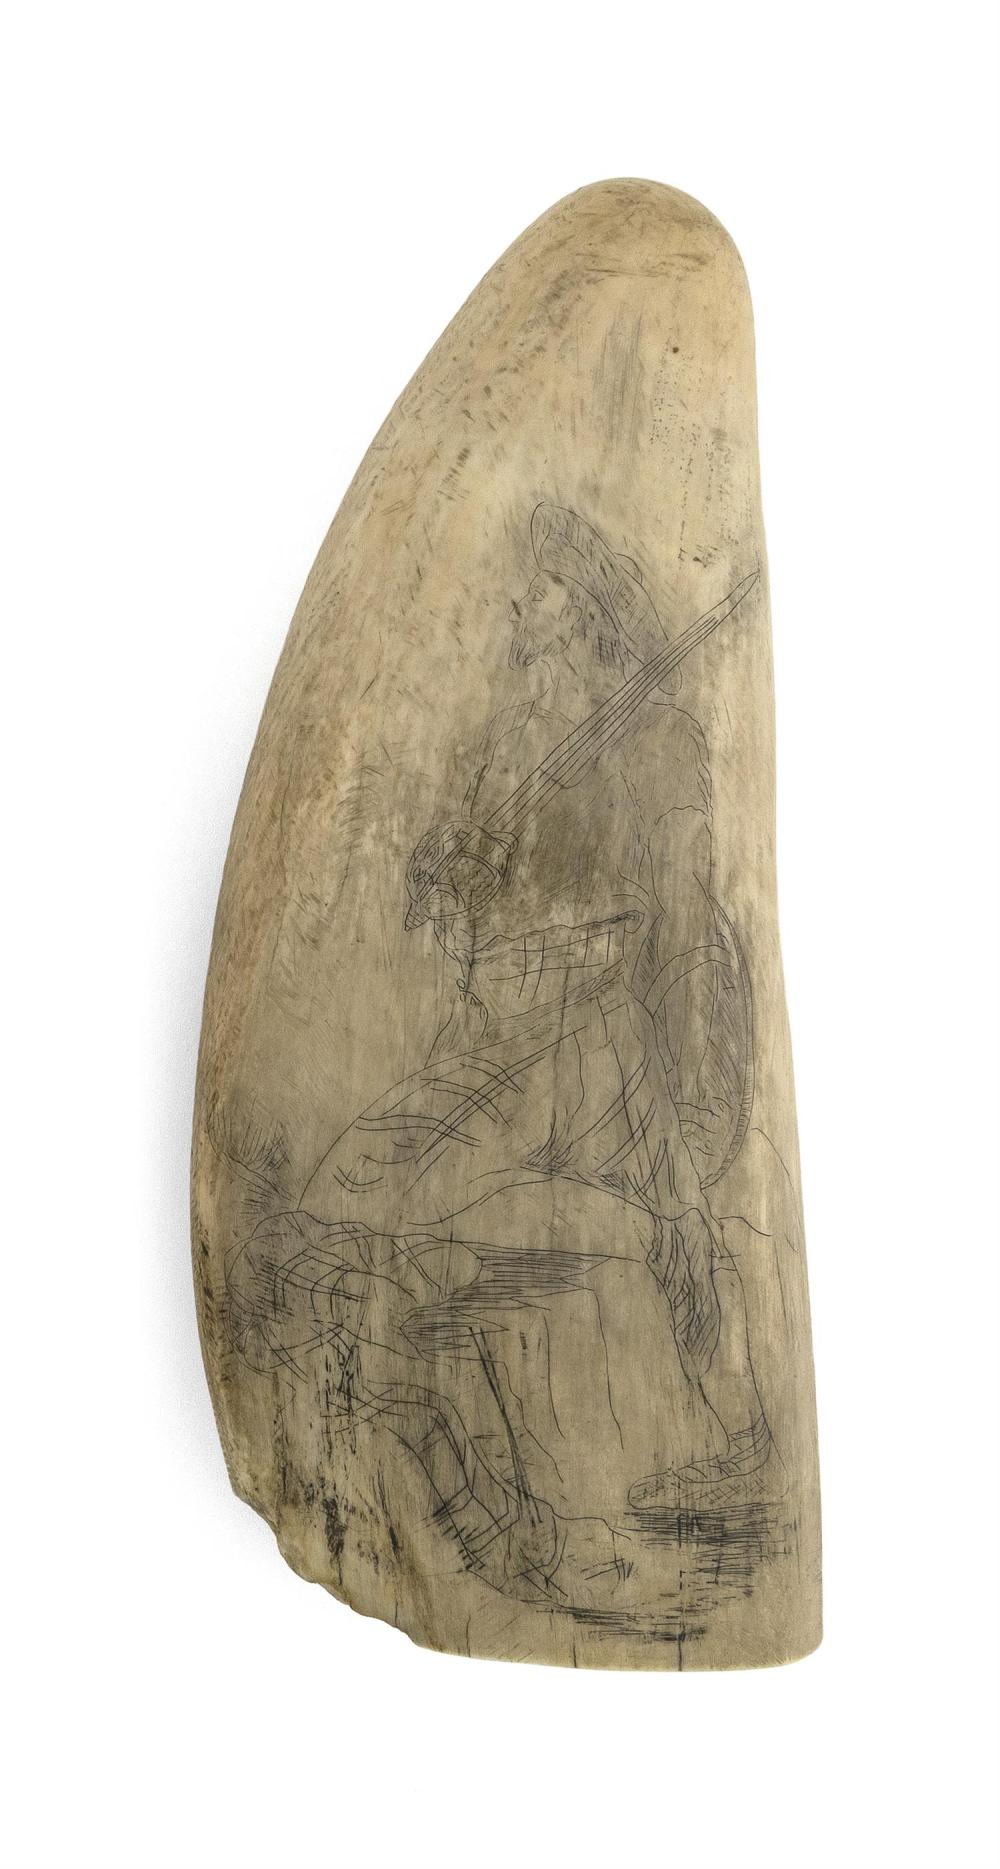 SCRIMSHAW WHALE'S TOOTH WITH IMAGES OF SCOTSMEN Obverse depicts a Scotsman holding his sword over his shoulder and a round shield in..